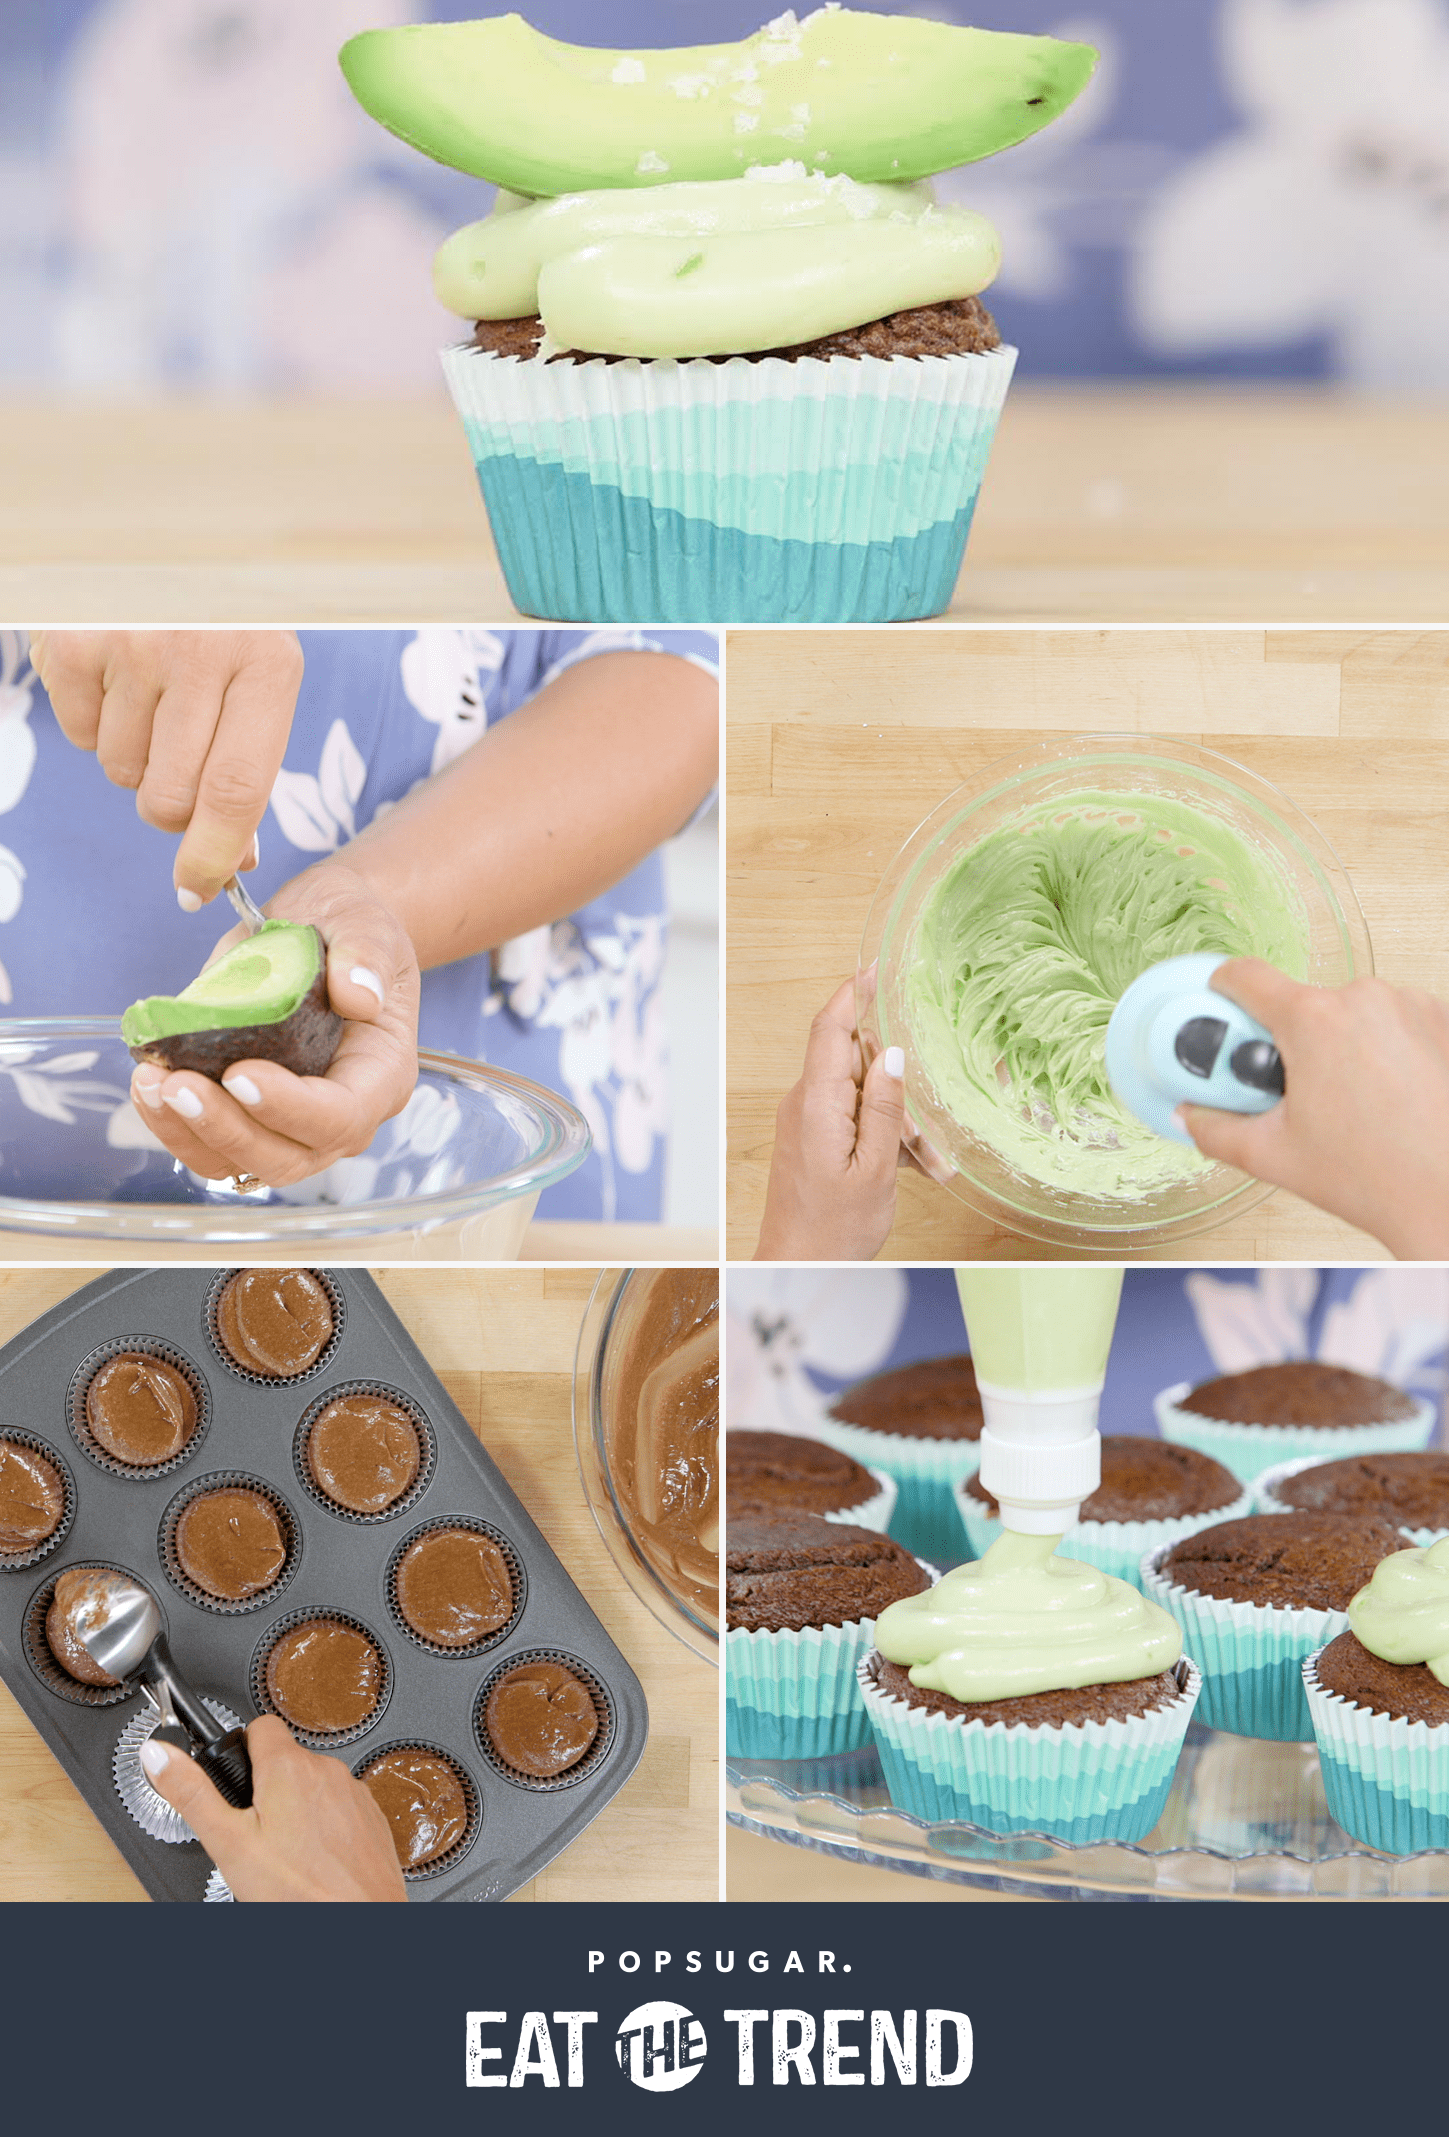 Avocado Cupcakes Are the Sweet Way to Fuel Your Avocado Obession